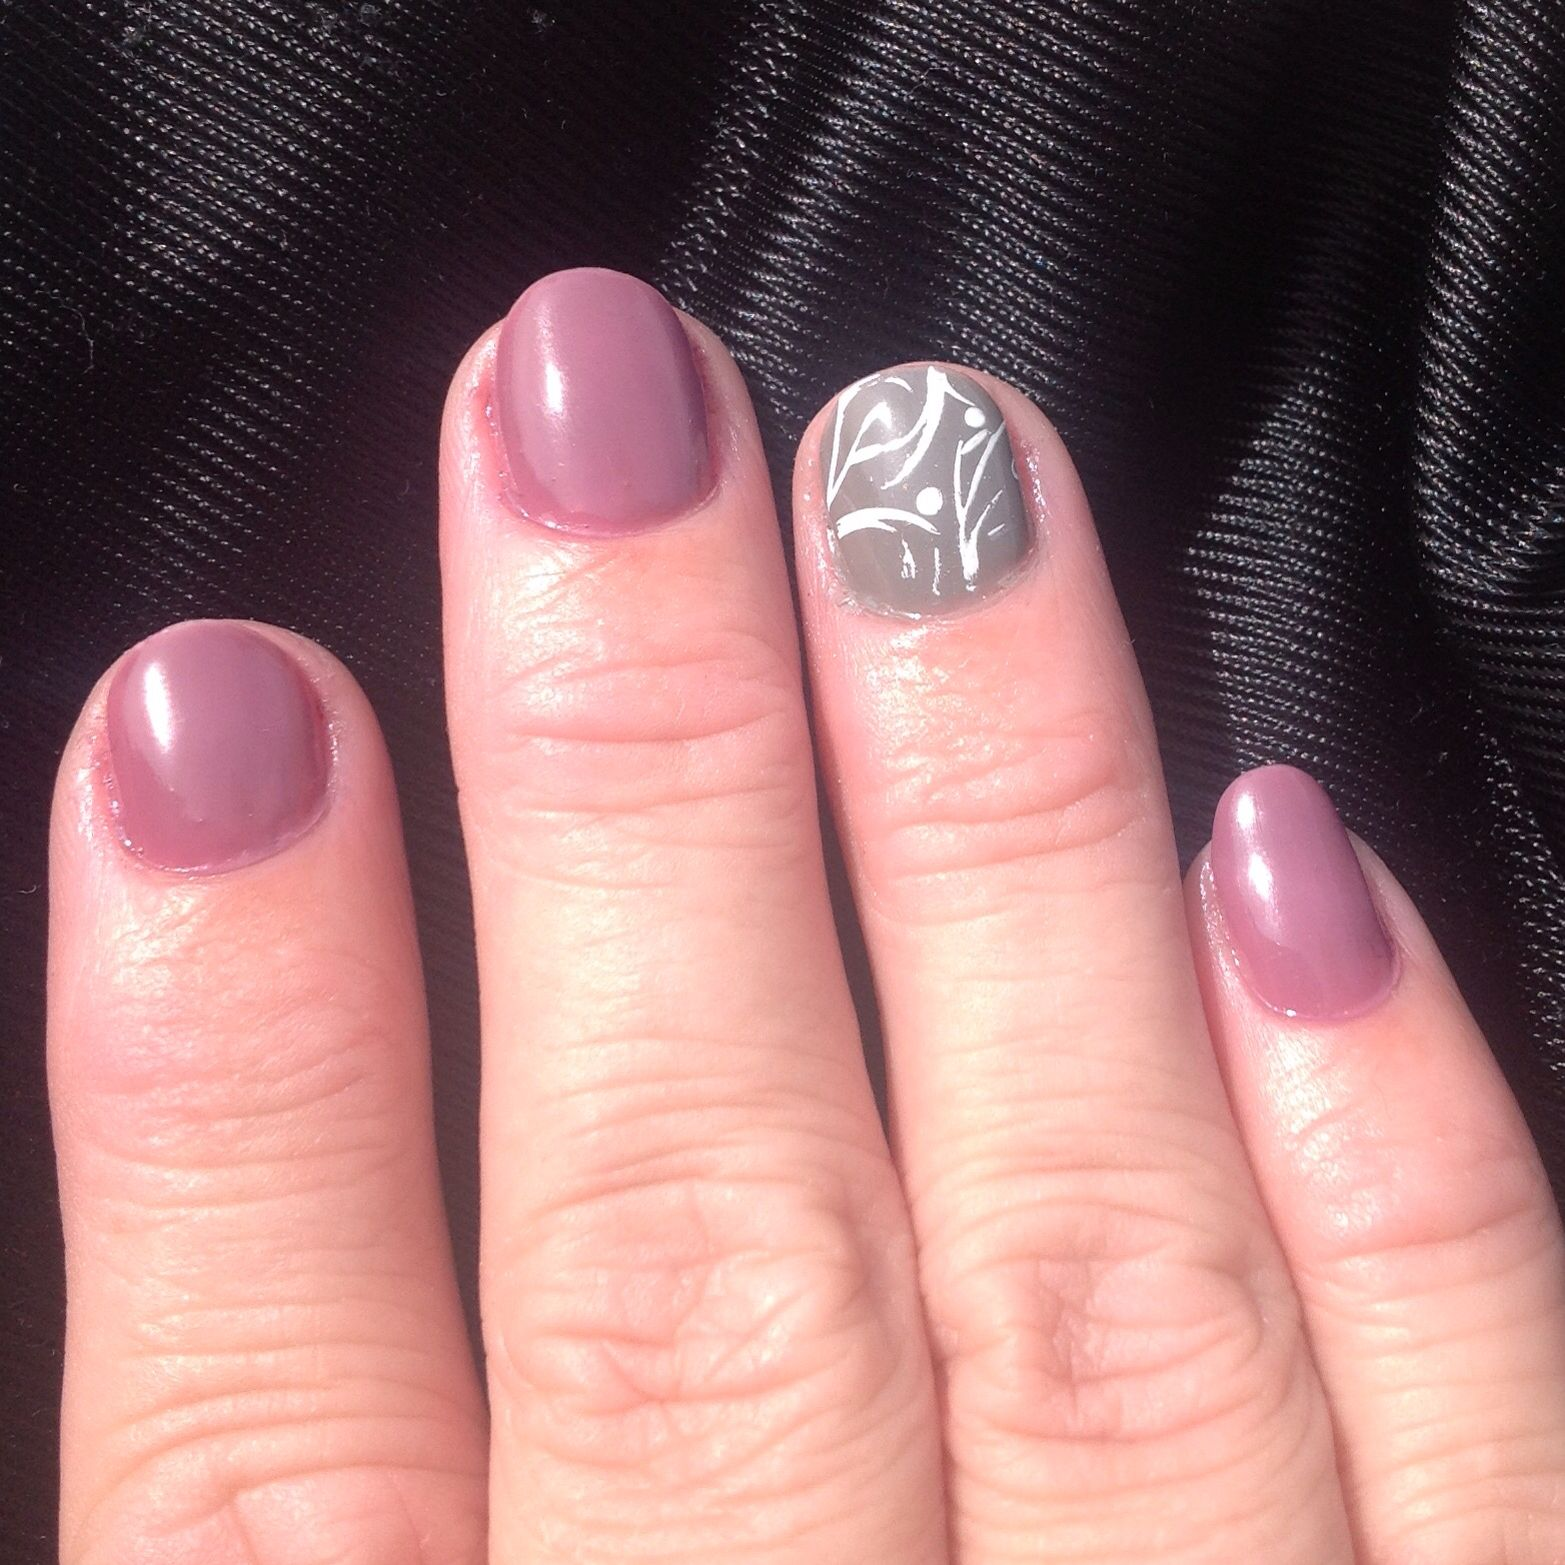 Great Colors For Fall Gelmoment Ballerina And Stroll In Paris Nails Gel Polish Gel